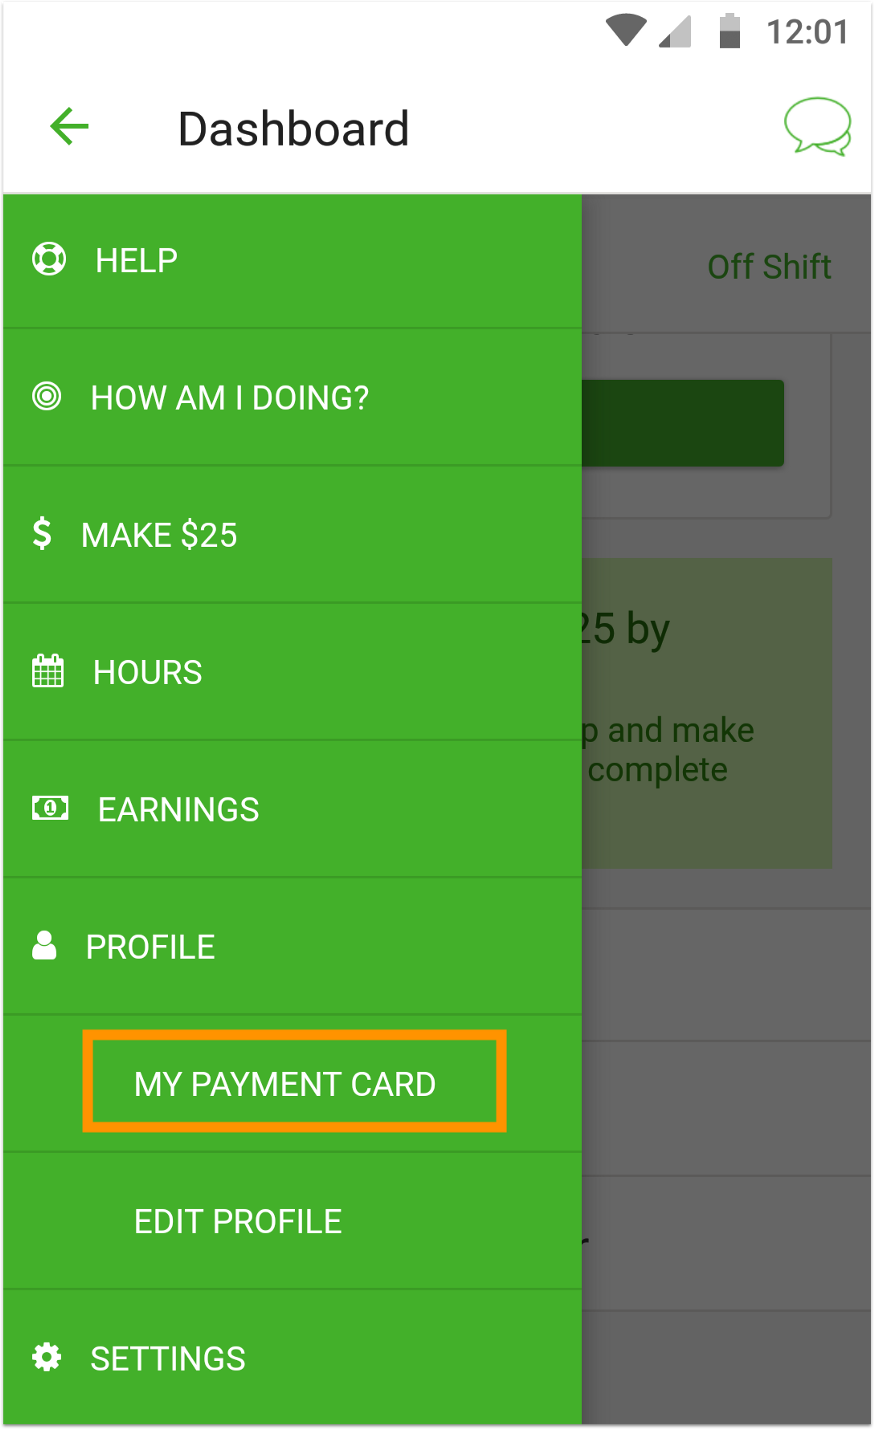 Need to replace your Instacart payment card? - The Instacart